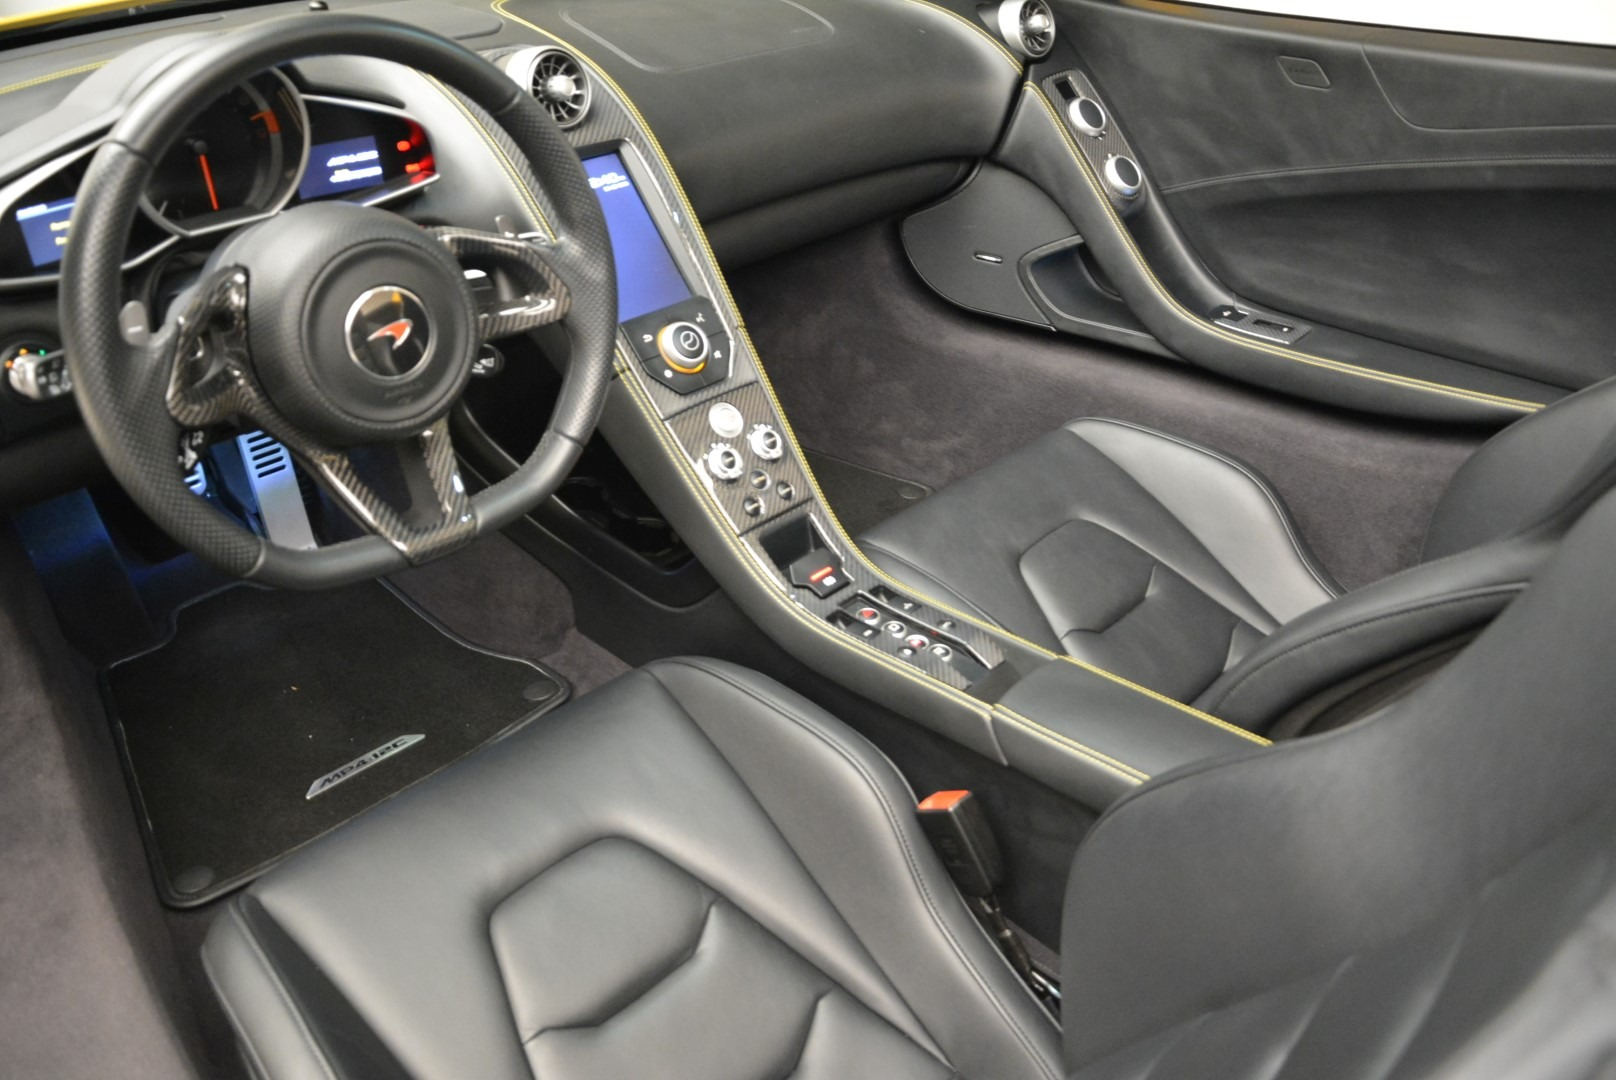 Used 2014 McLaren MP4-12C Spider For Sale In Westport, CT 2057_p25